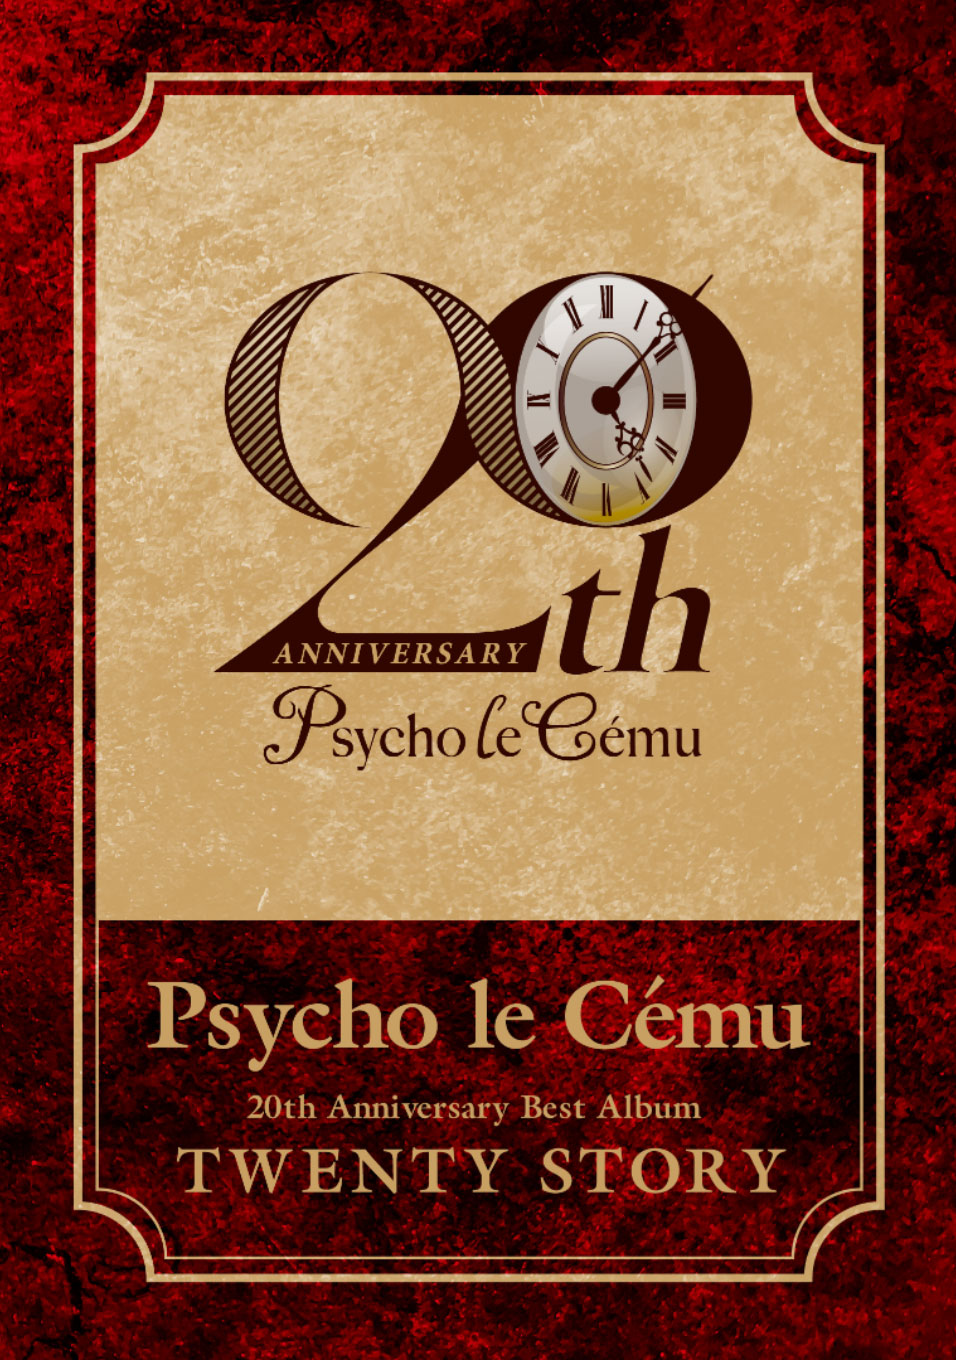 Psycho le Cemu の CD 【ヒストリーBOX盤】20th Anniversary Best Album TWENTY STORY